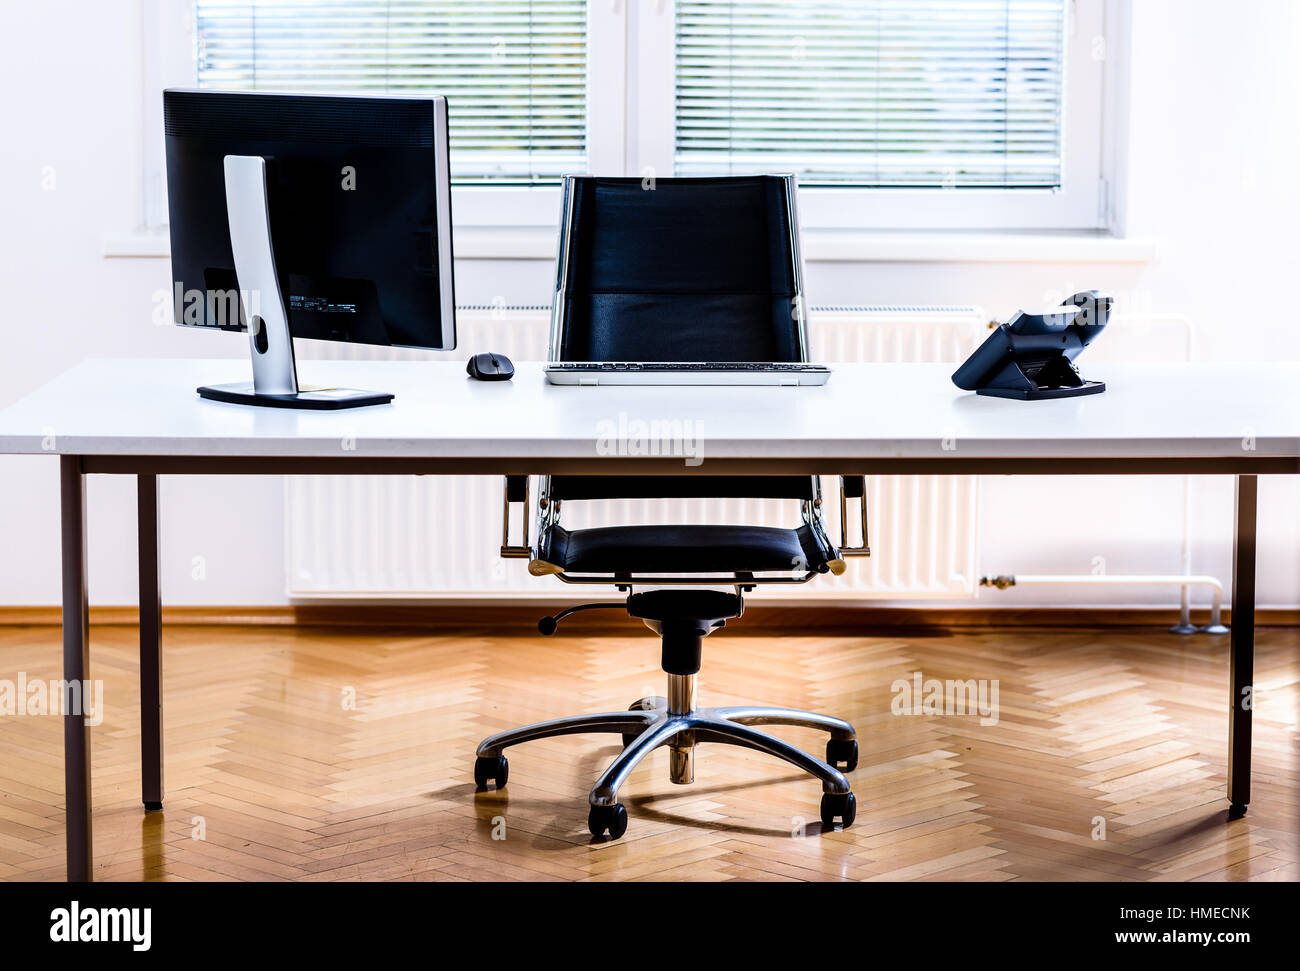 corporate office desk. Office Space Desk. Modern Empty Desk With Computer, Phone And Chair. Corporate A